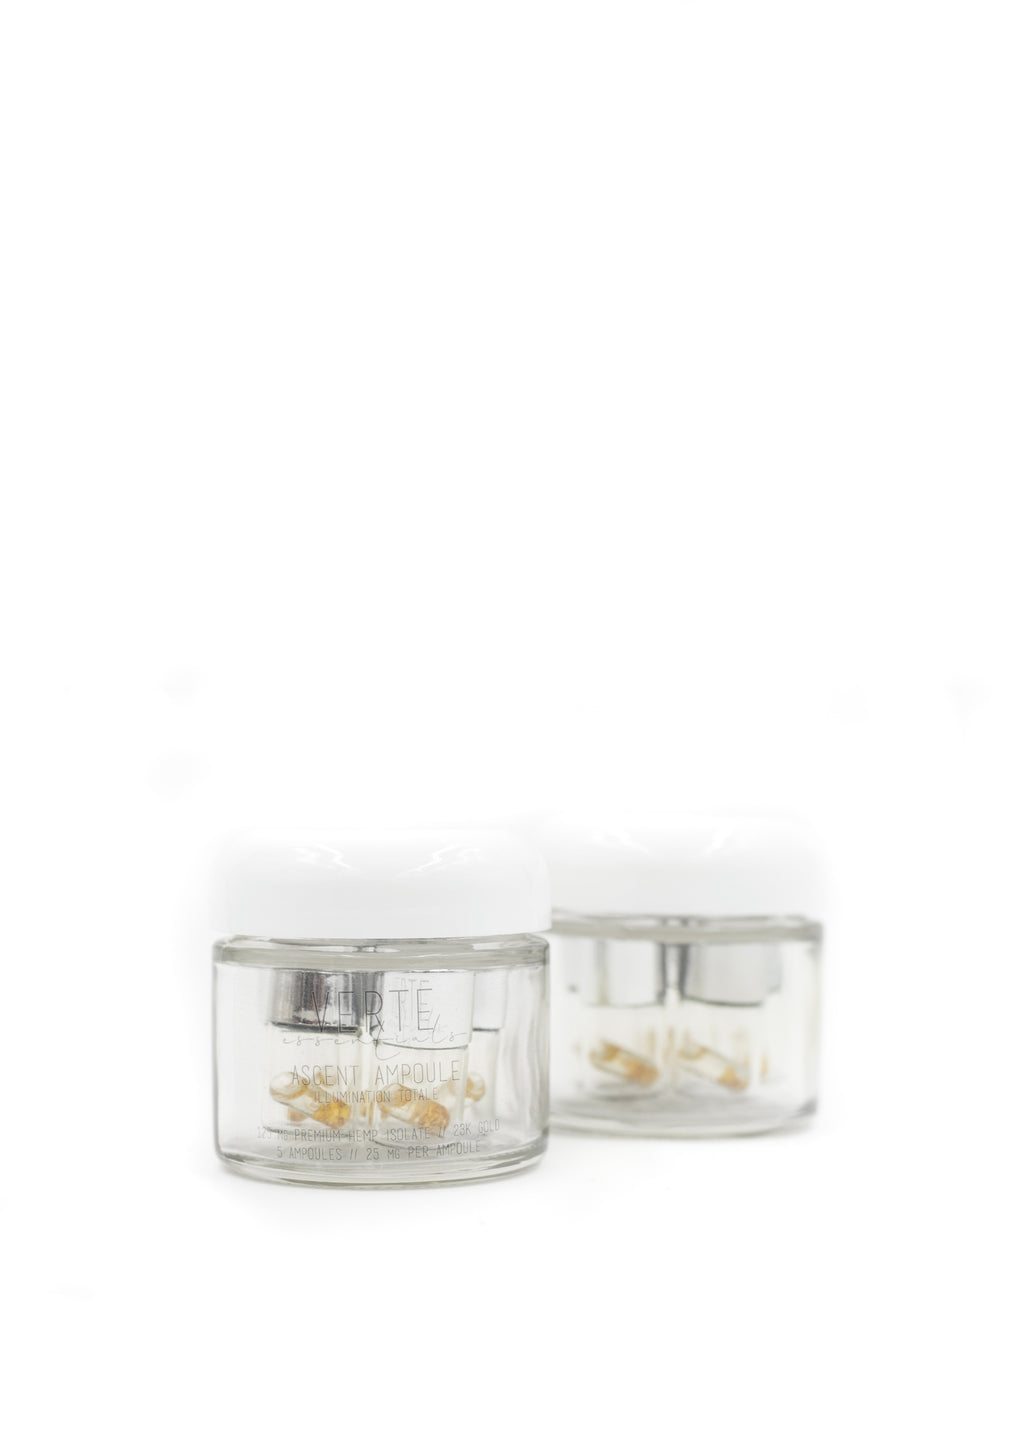 Ascent Ampoules